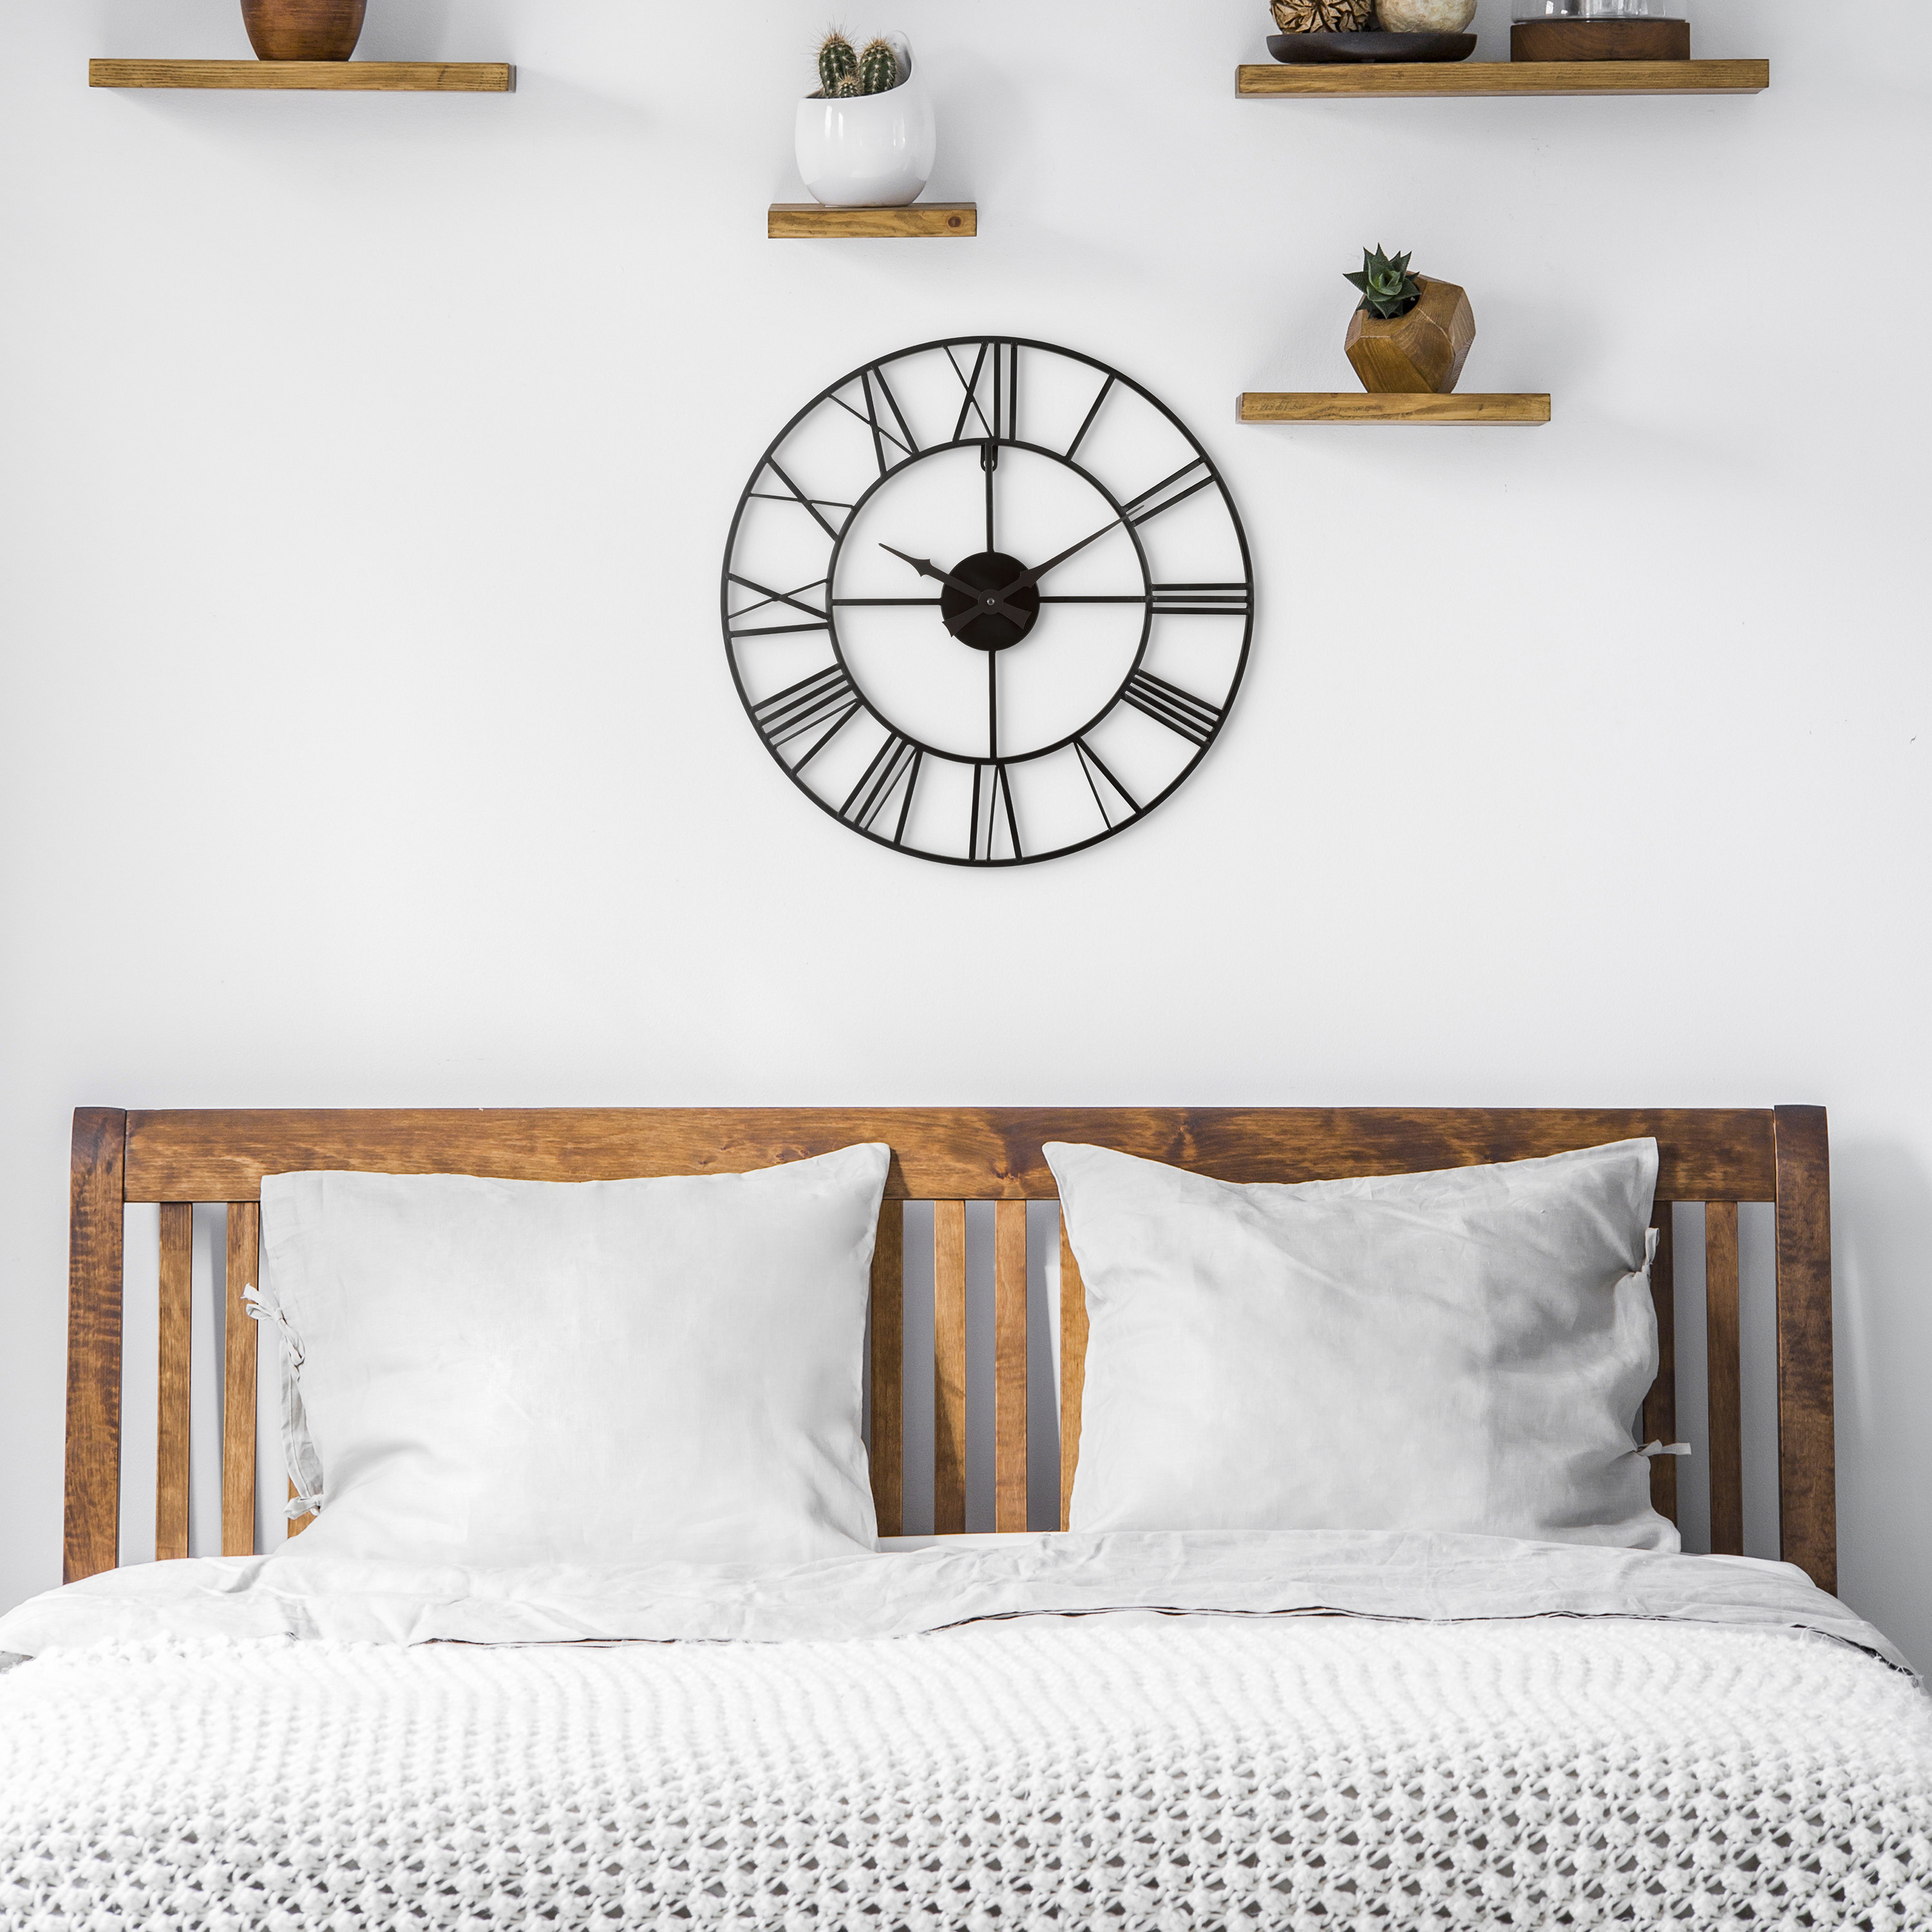 A bed with a clock above it